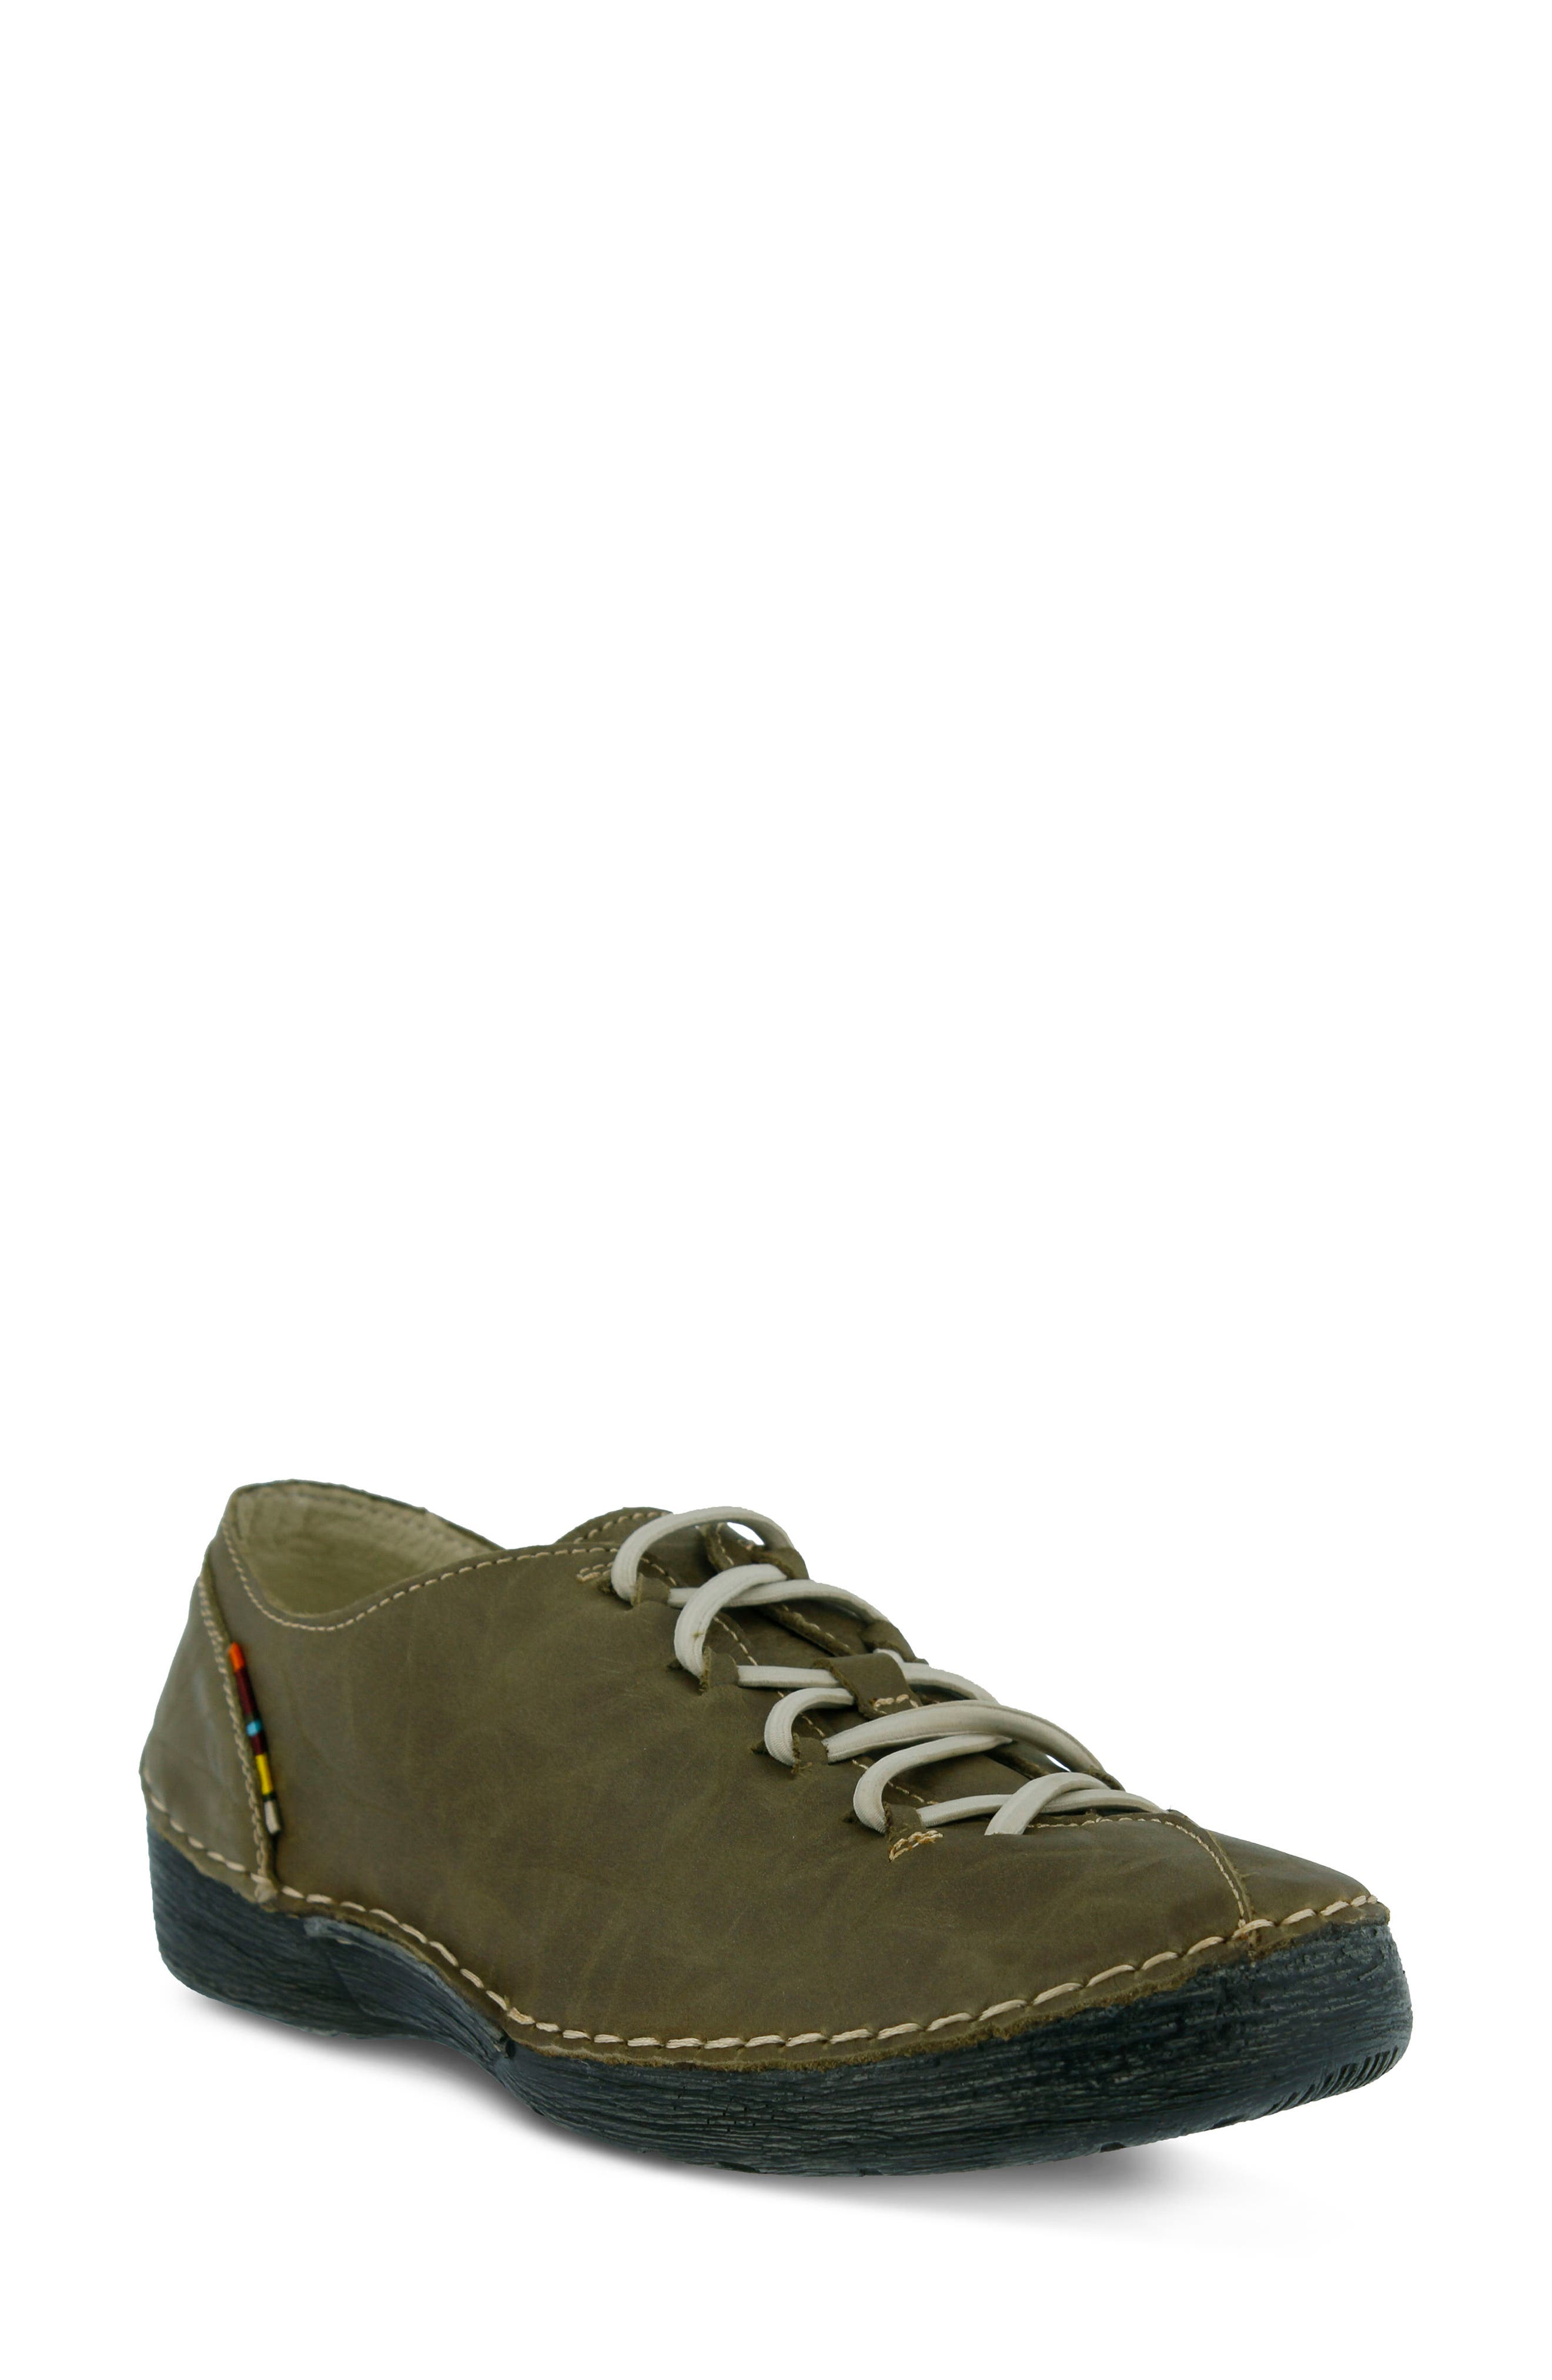 Carhop Sneaker,                         Main,                         color, OLIVE GREEN LEATHER